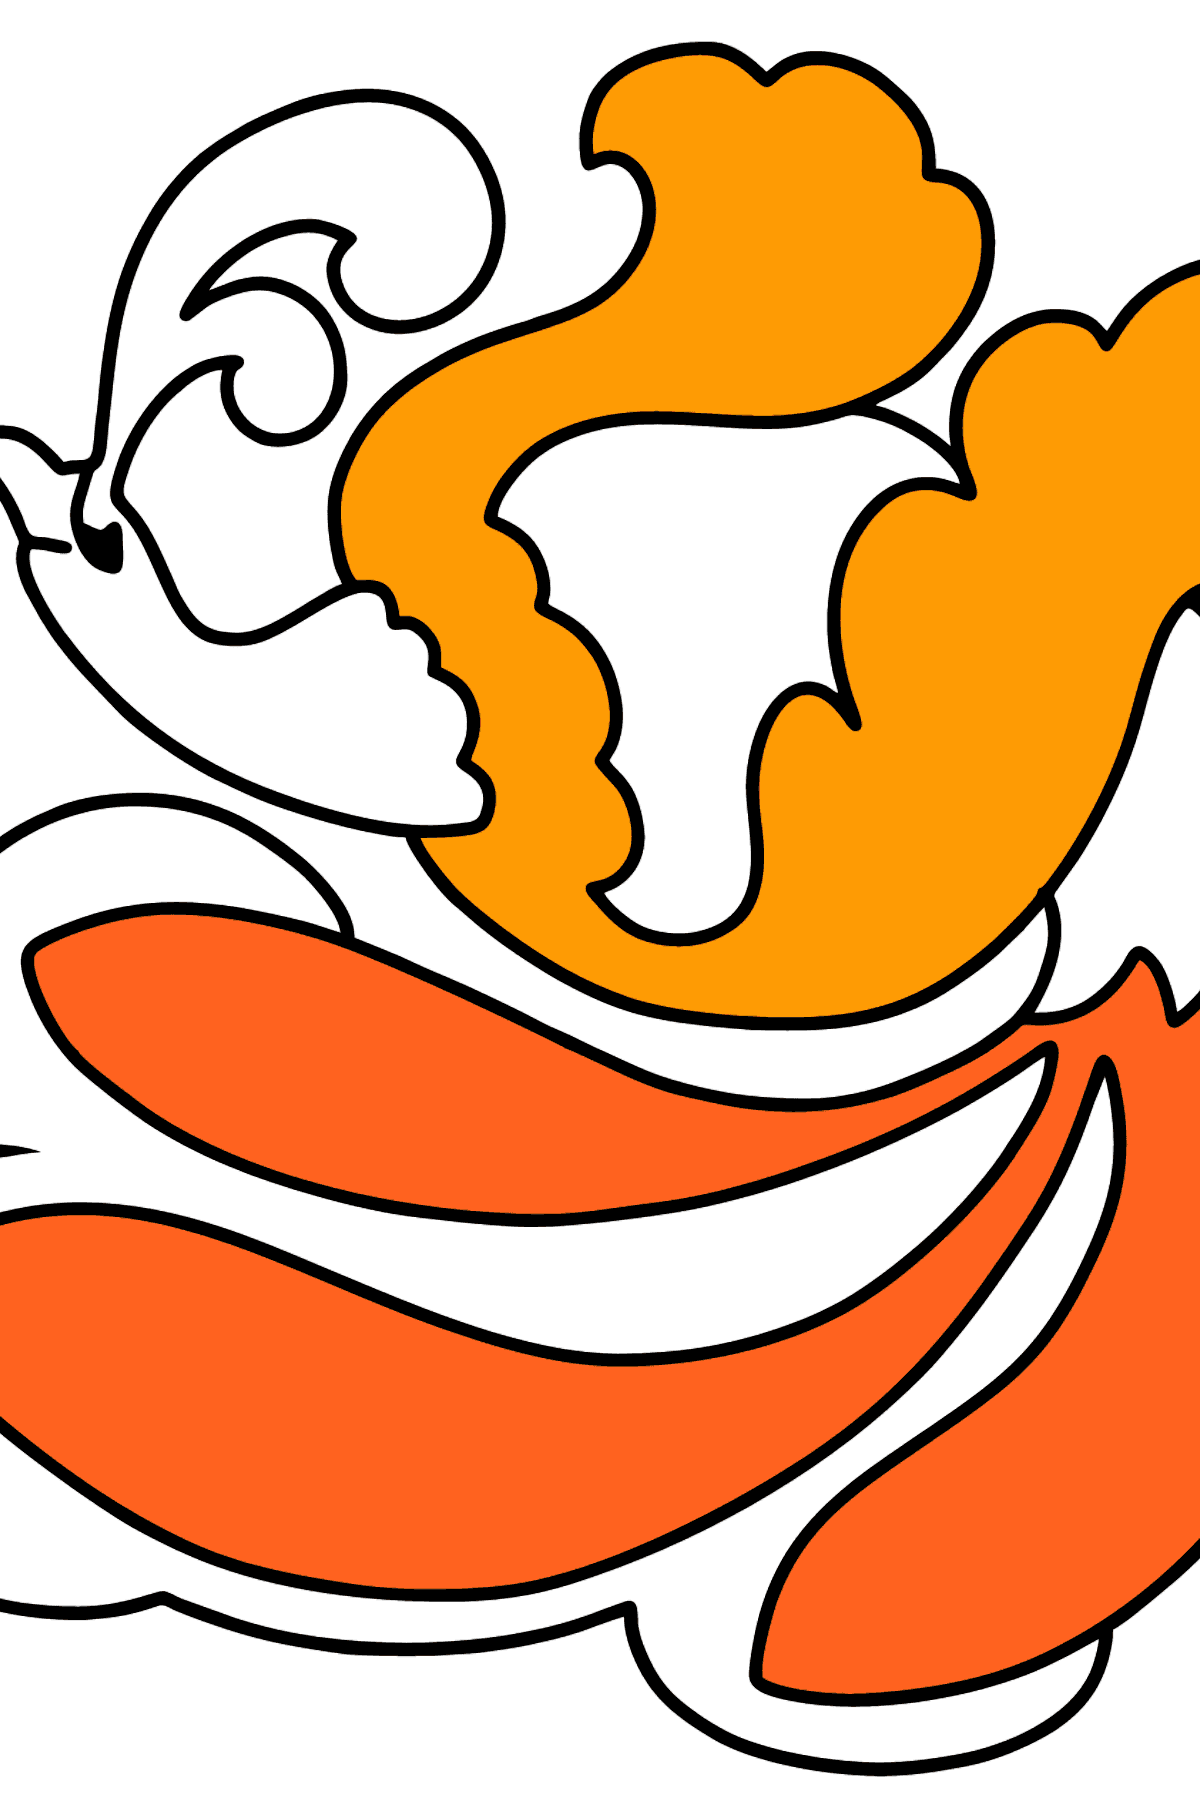 Firebird coloring page - Coloring Pages for Kids